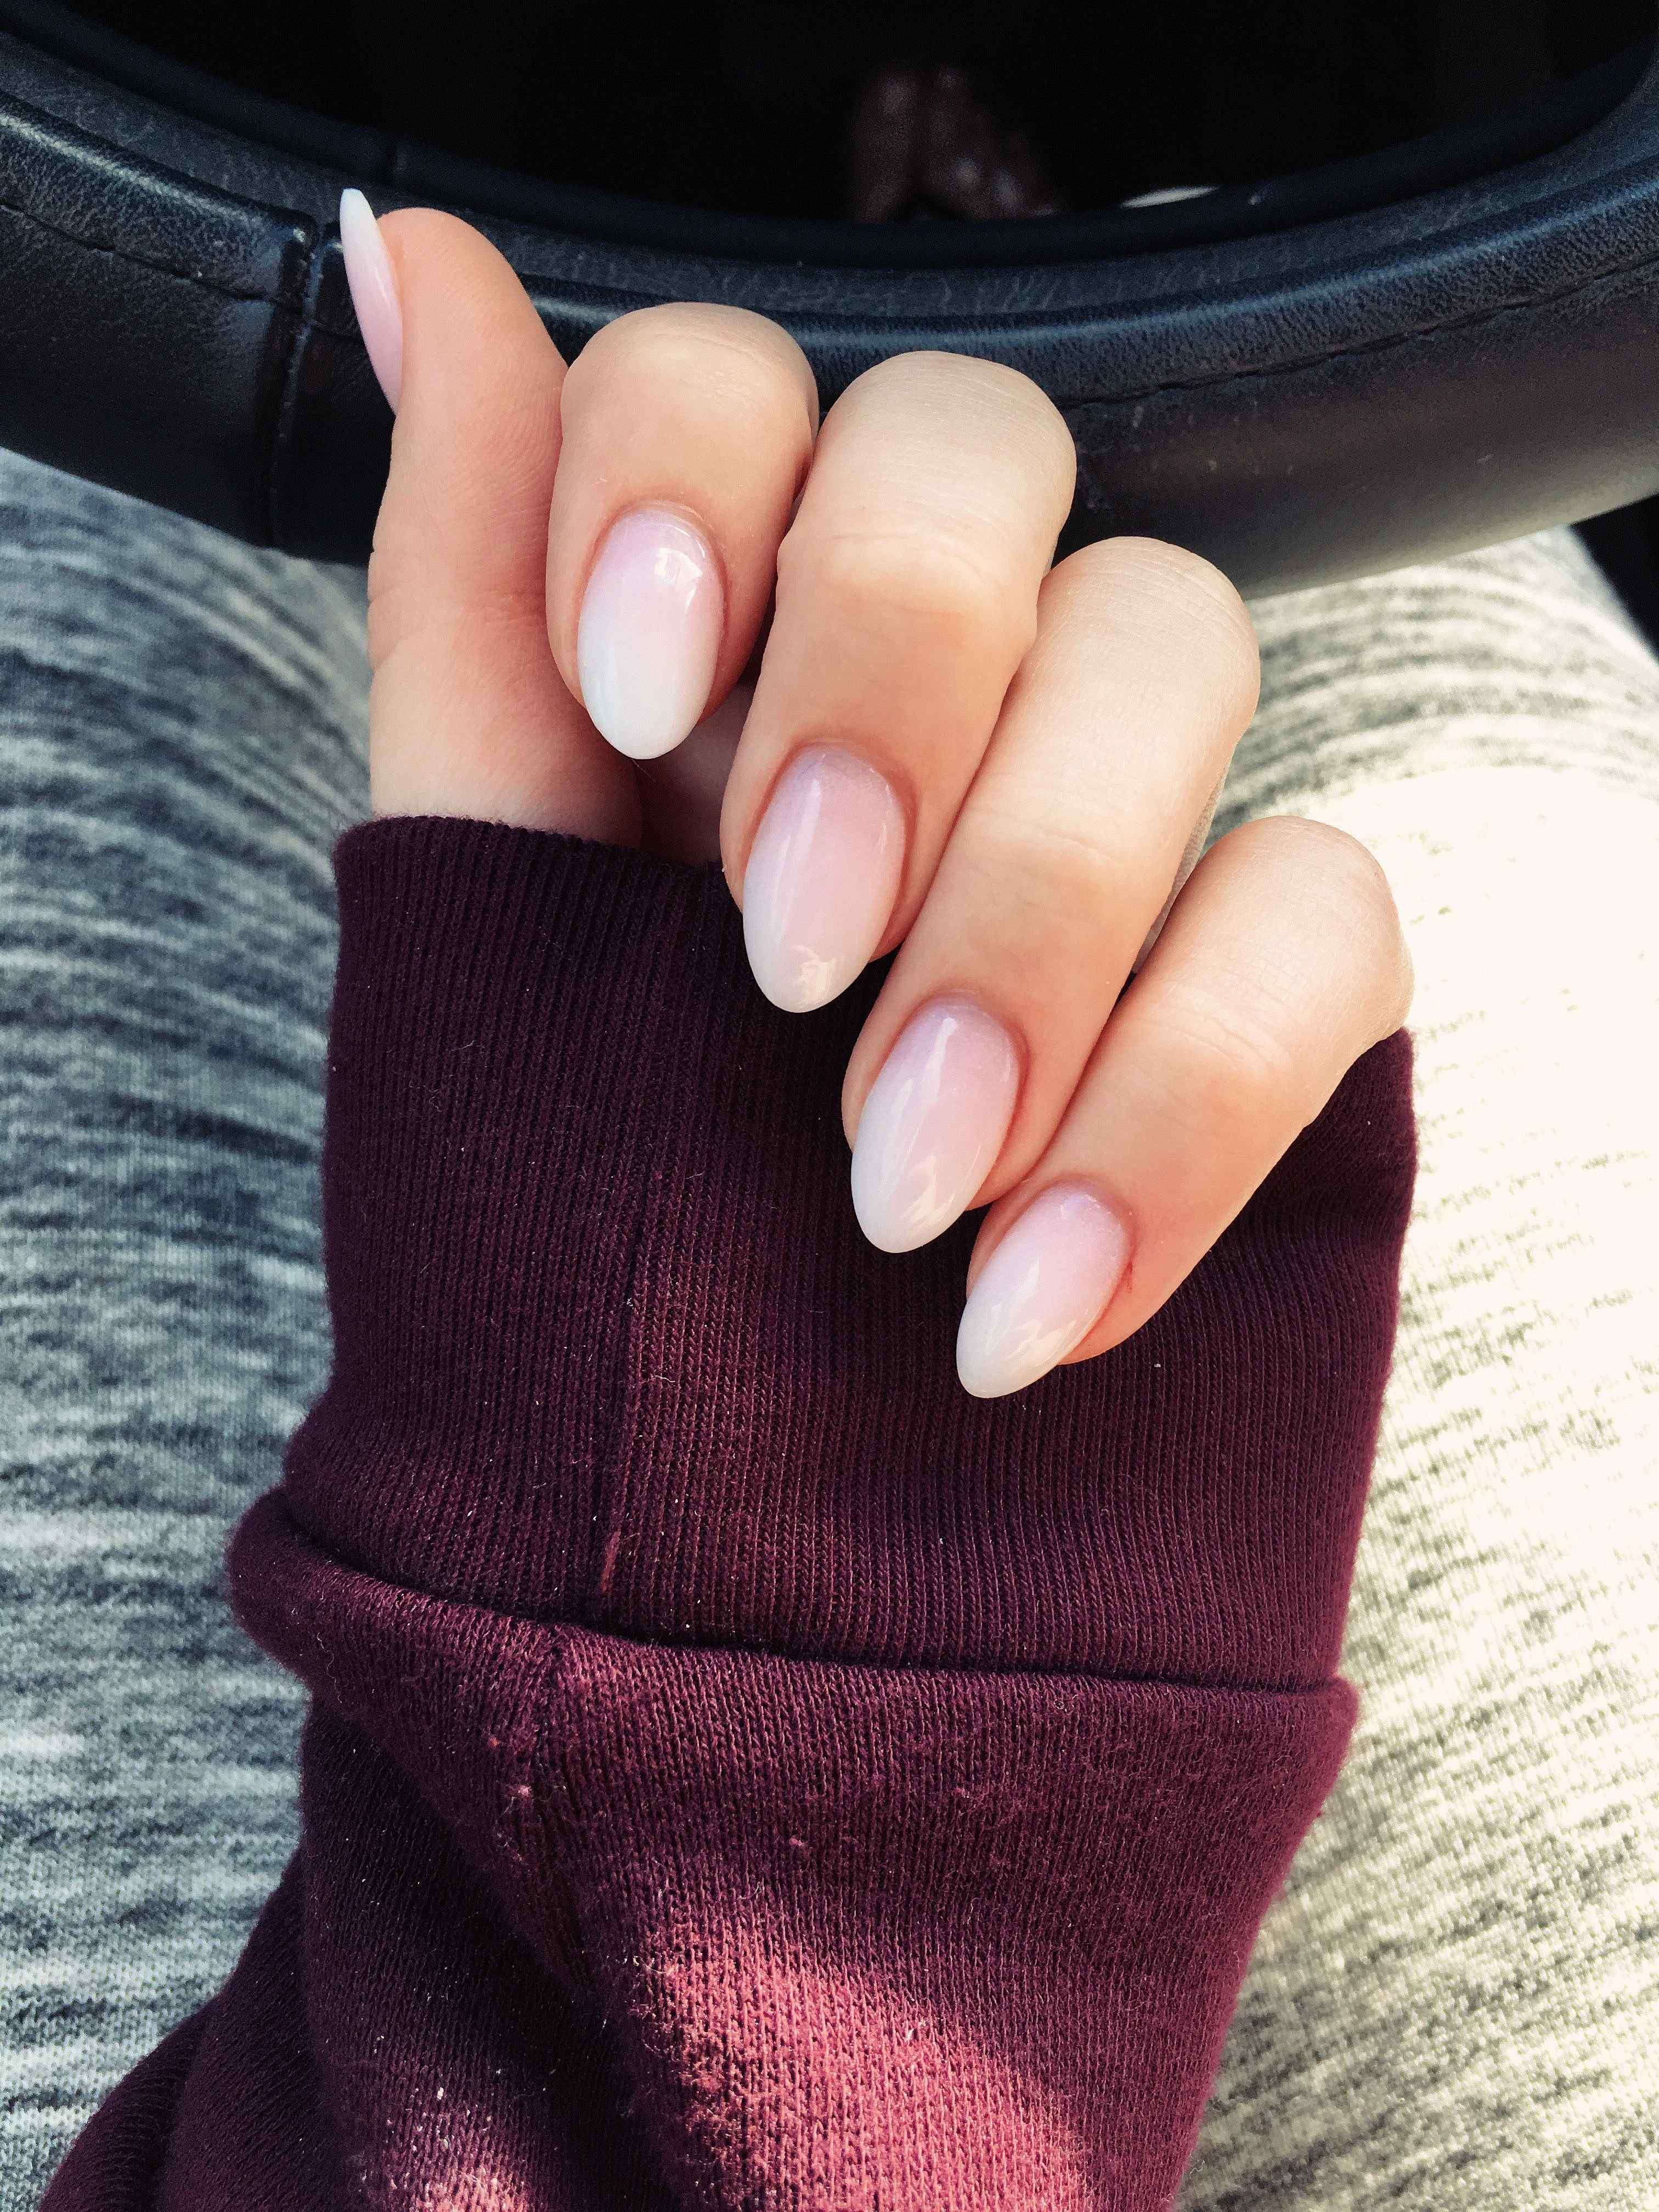 23 Most Popular Ways To New Nails Acrylic Short Almond Summer